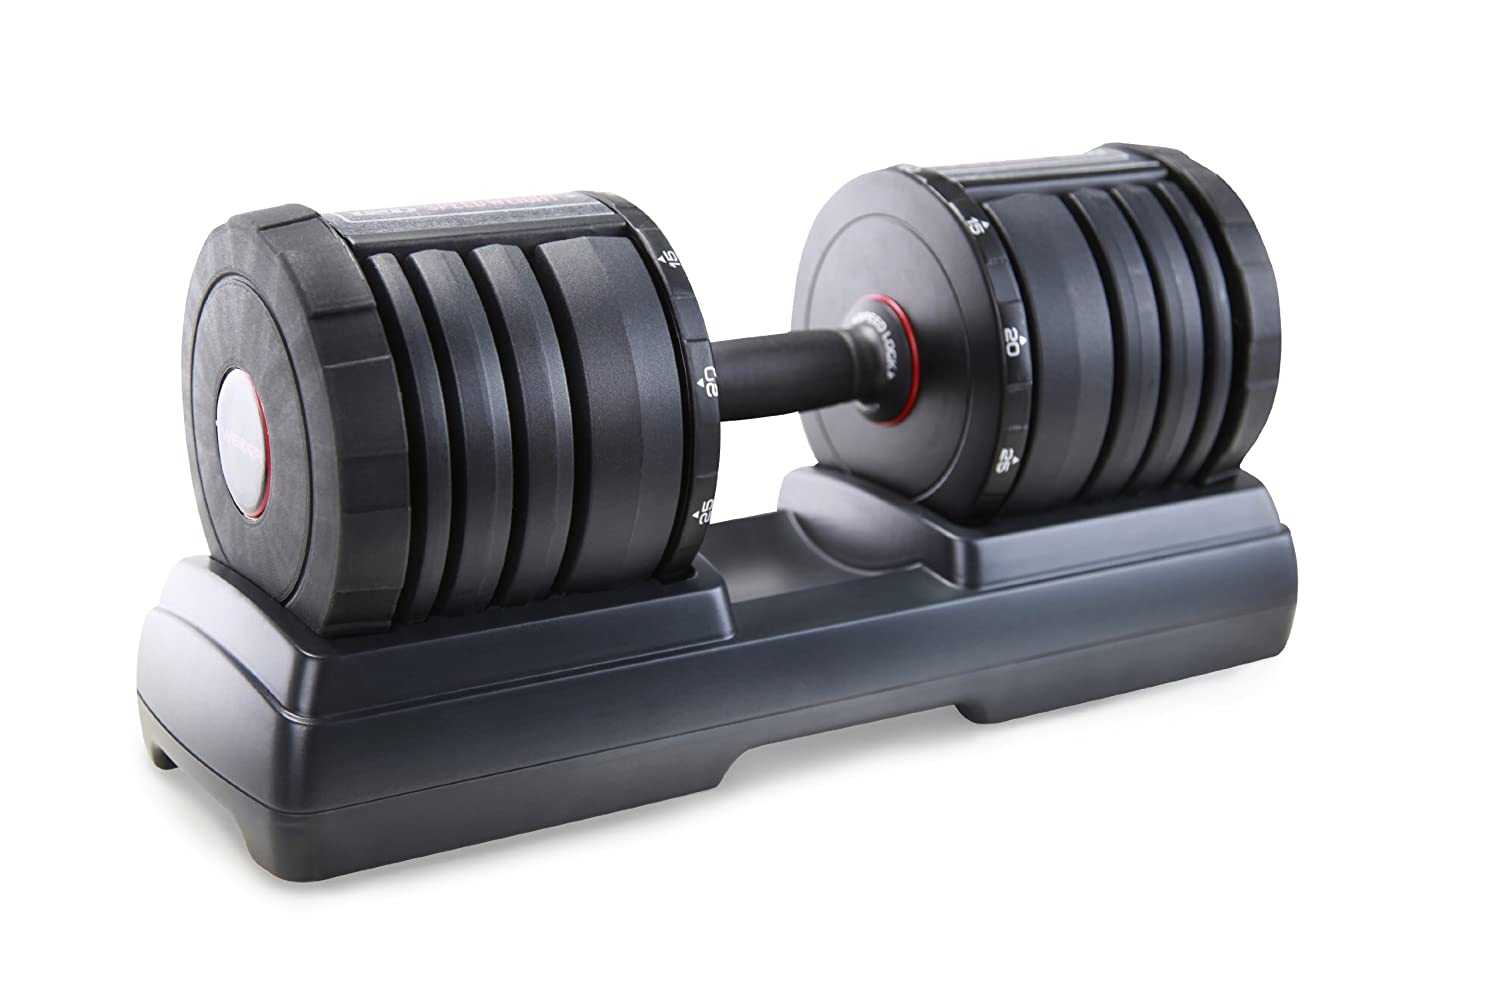 Top 3 Best Adjustable Dumbbells (2020 Reviews & Buying Guide) 2